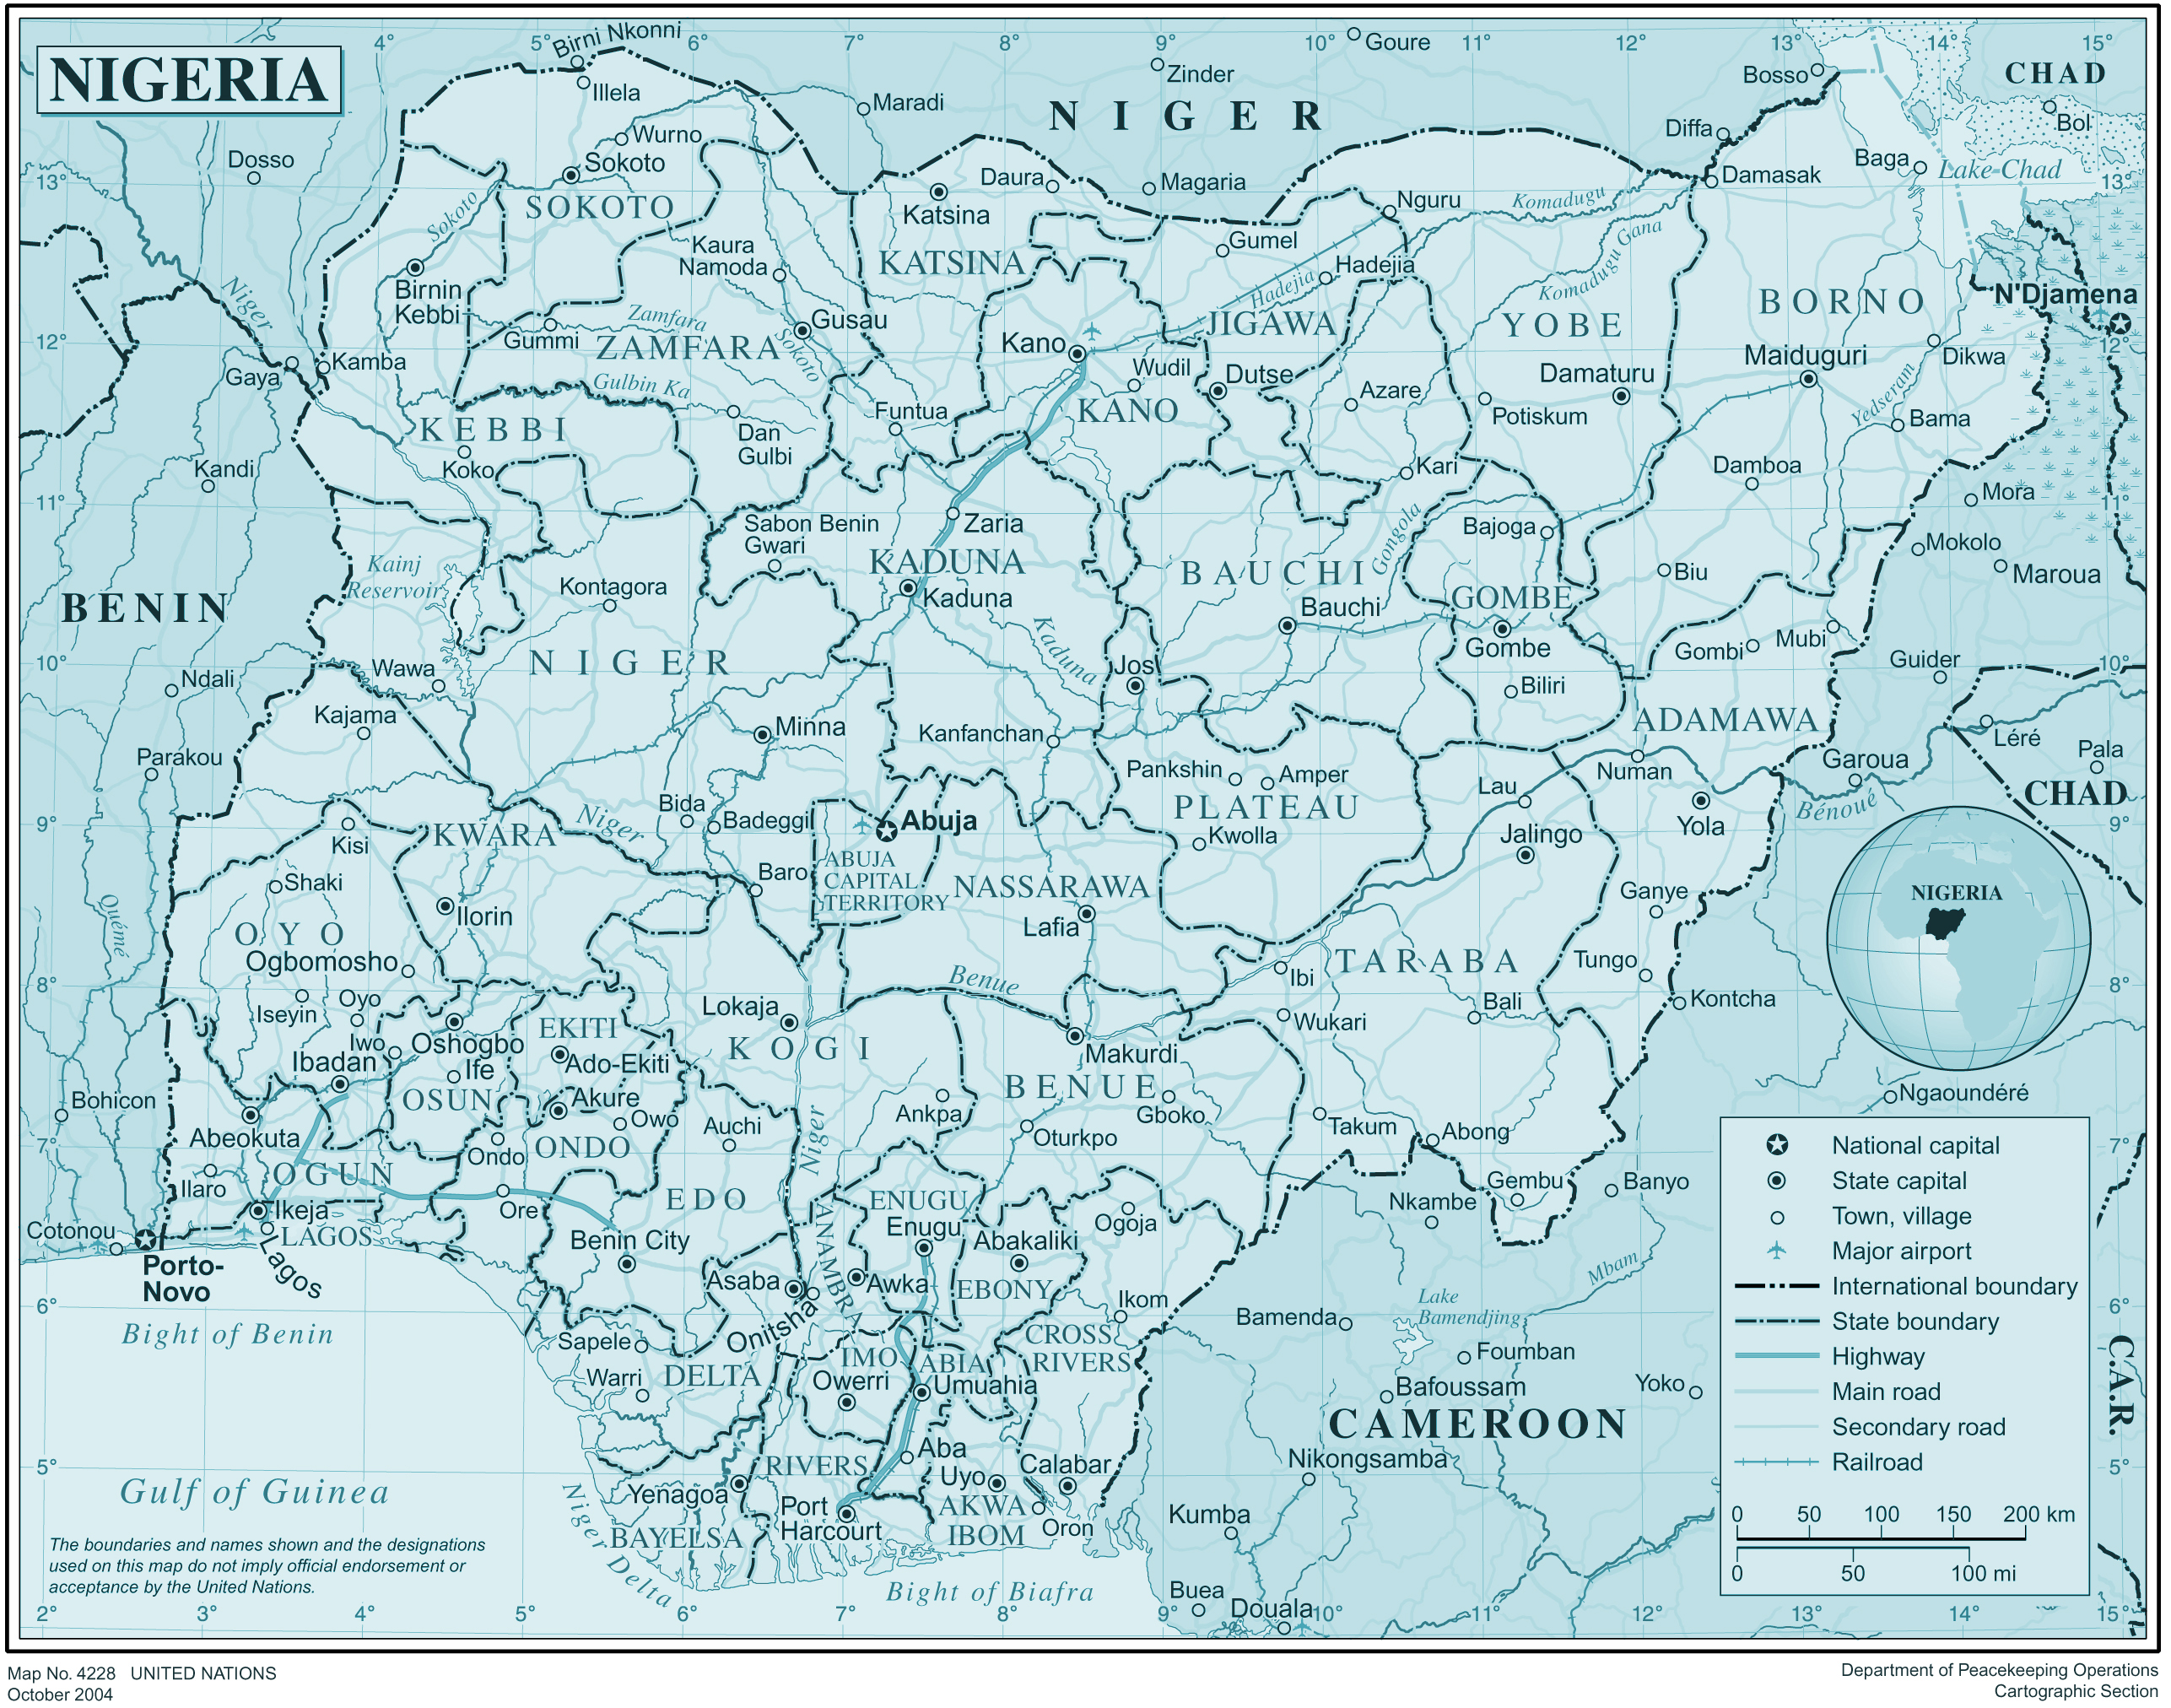 High resolution detailed administrative and political map of Nigeria